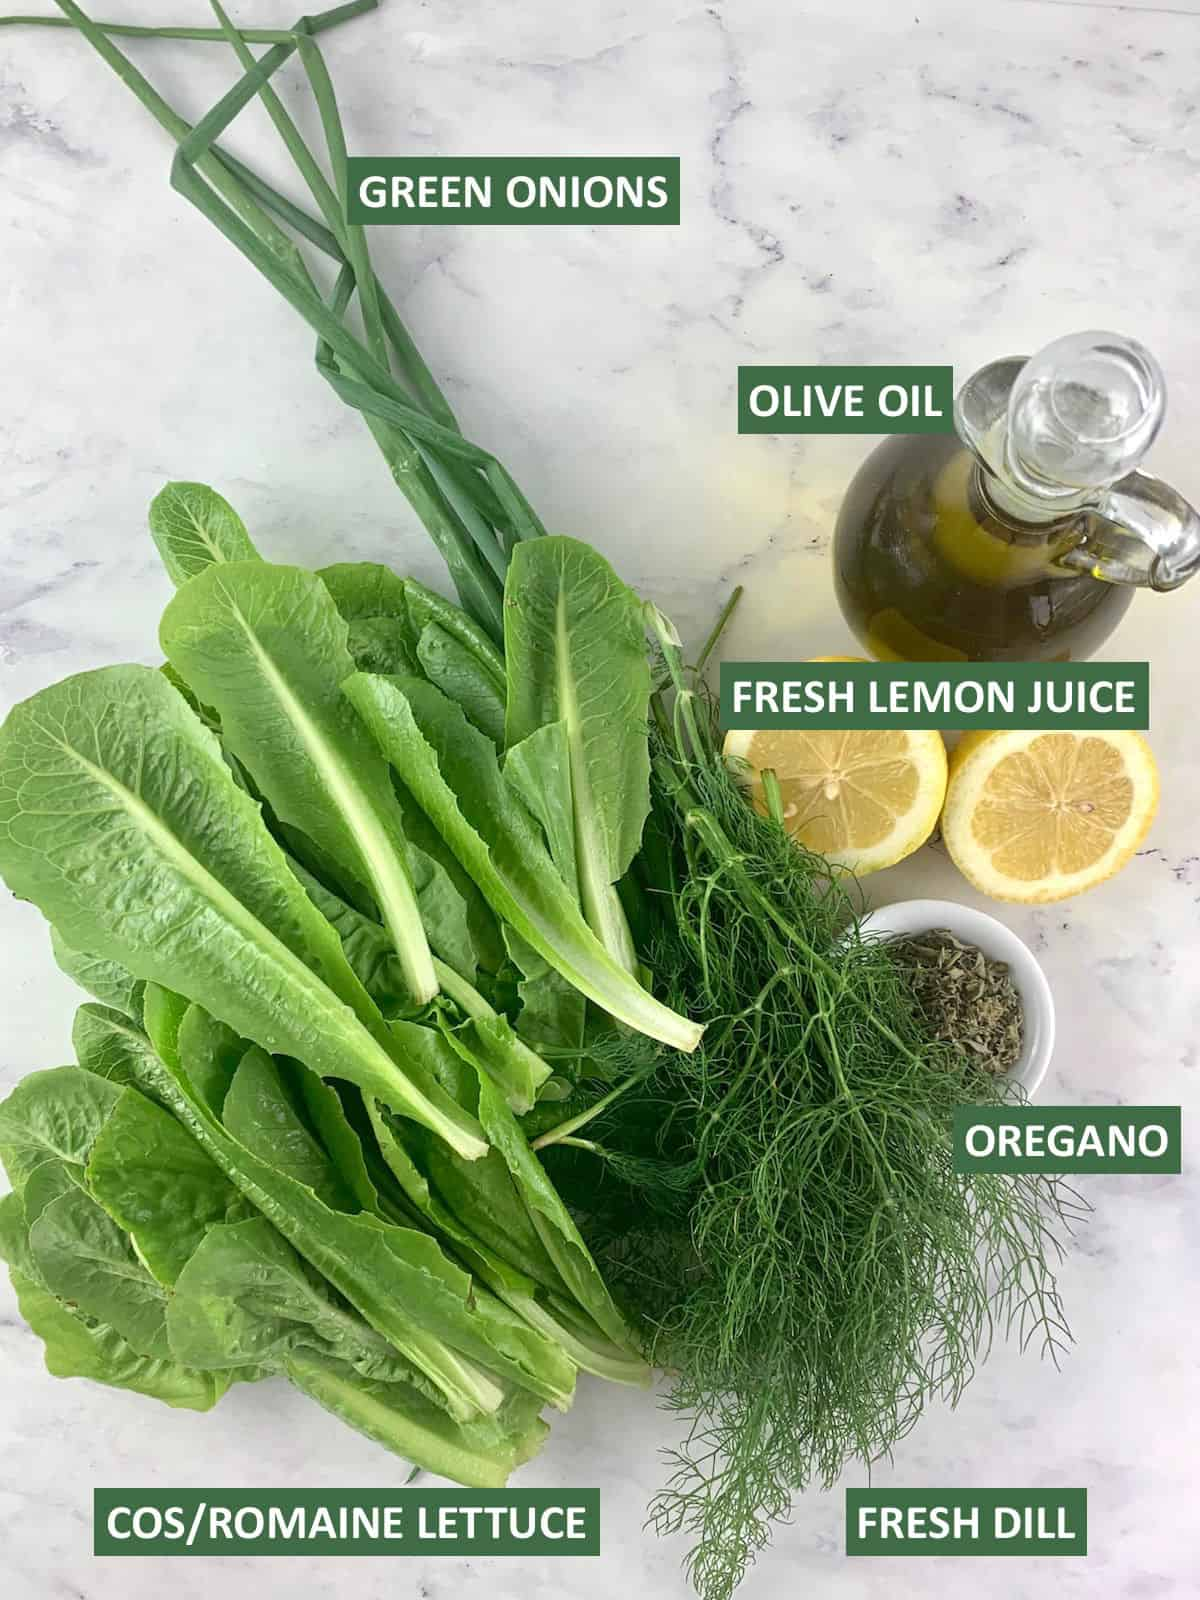 LABELLED INGREDIENTS NEEDED FOR MAROULOSALATA